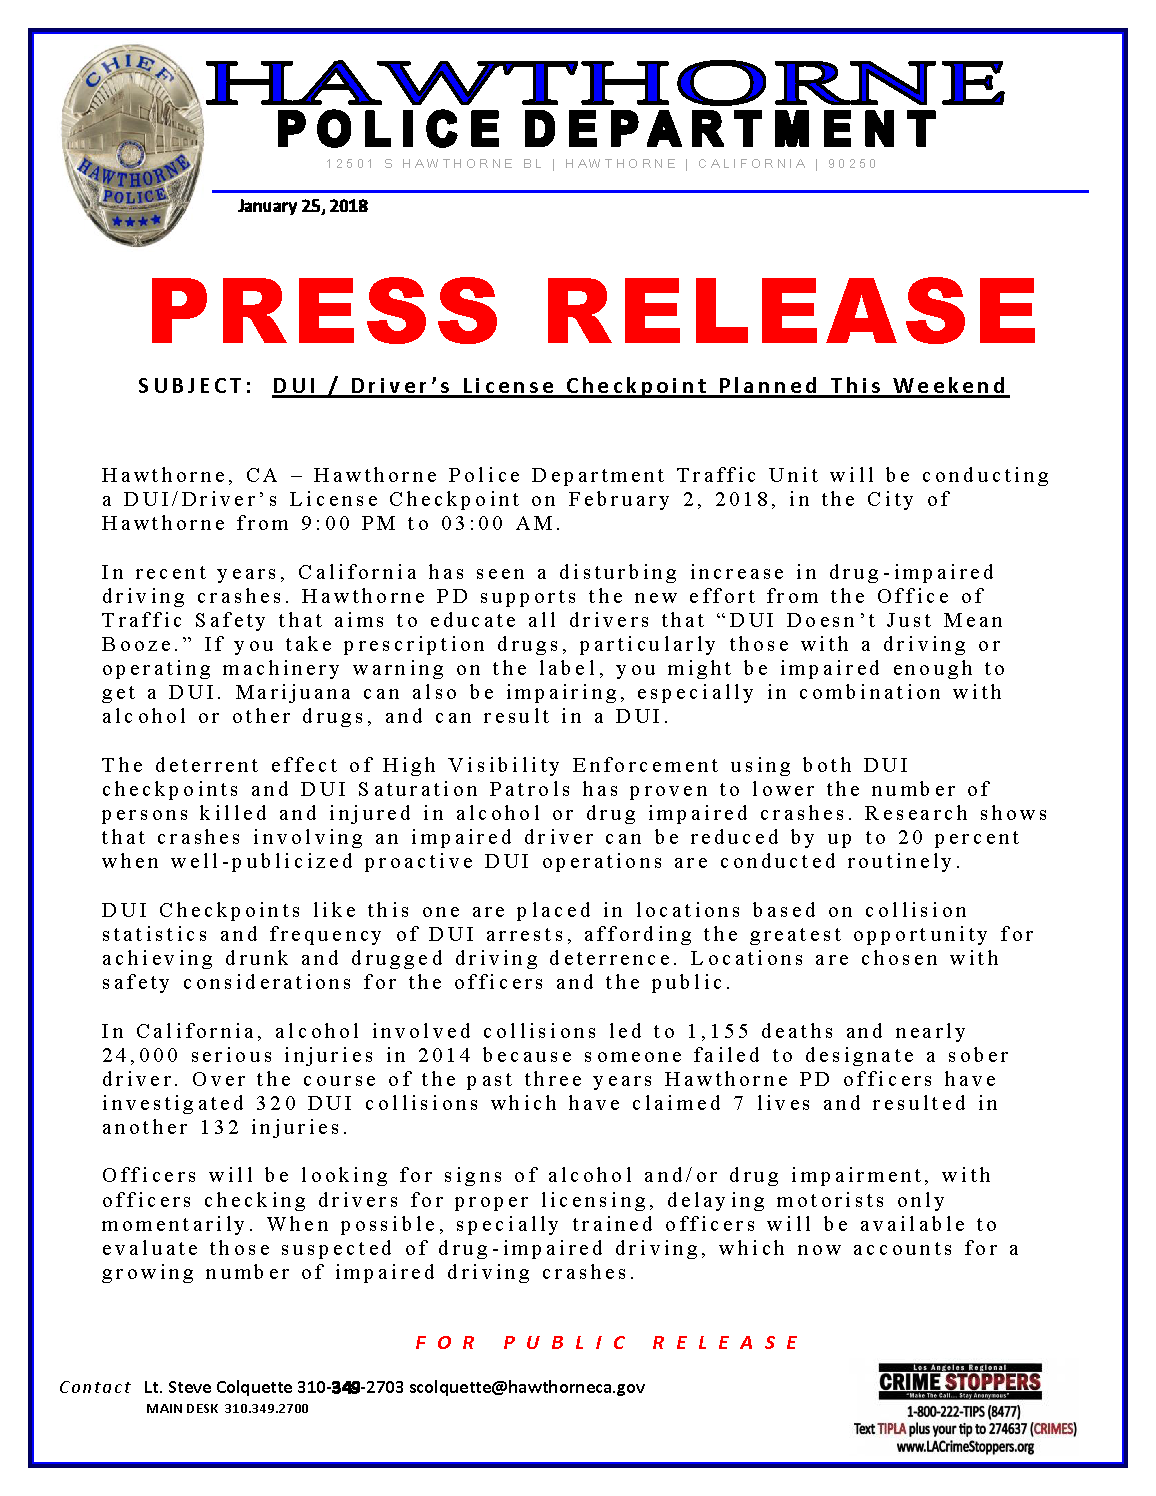 DUI/DRIVER'S LICENSE CHECKPOINT FEB 2 — Hawthorne police